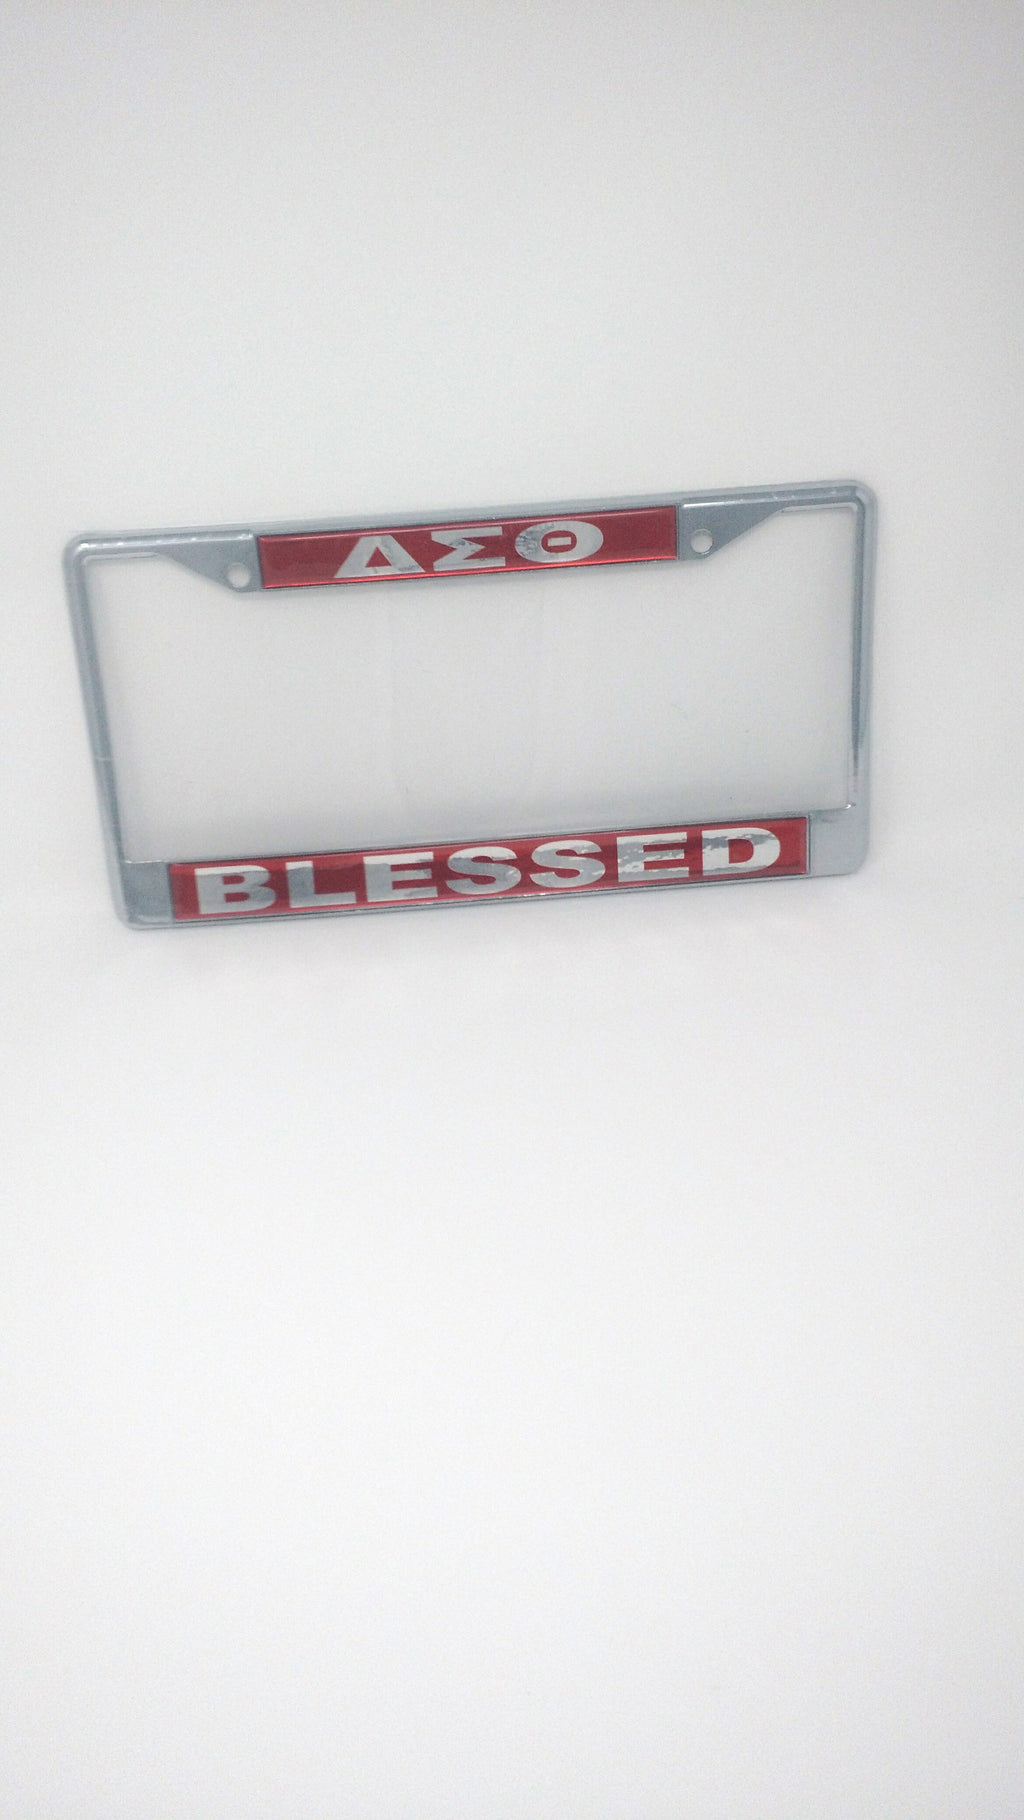 Delta Sigma Theta Mirror License Plate Frame - Blessed